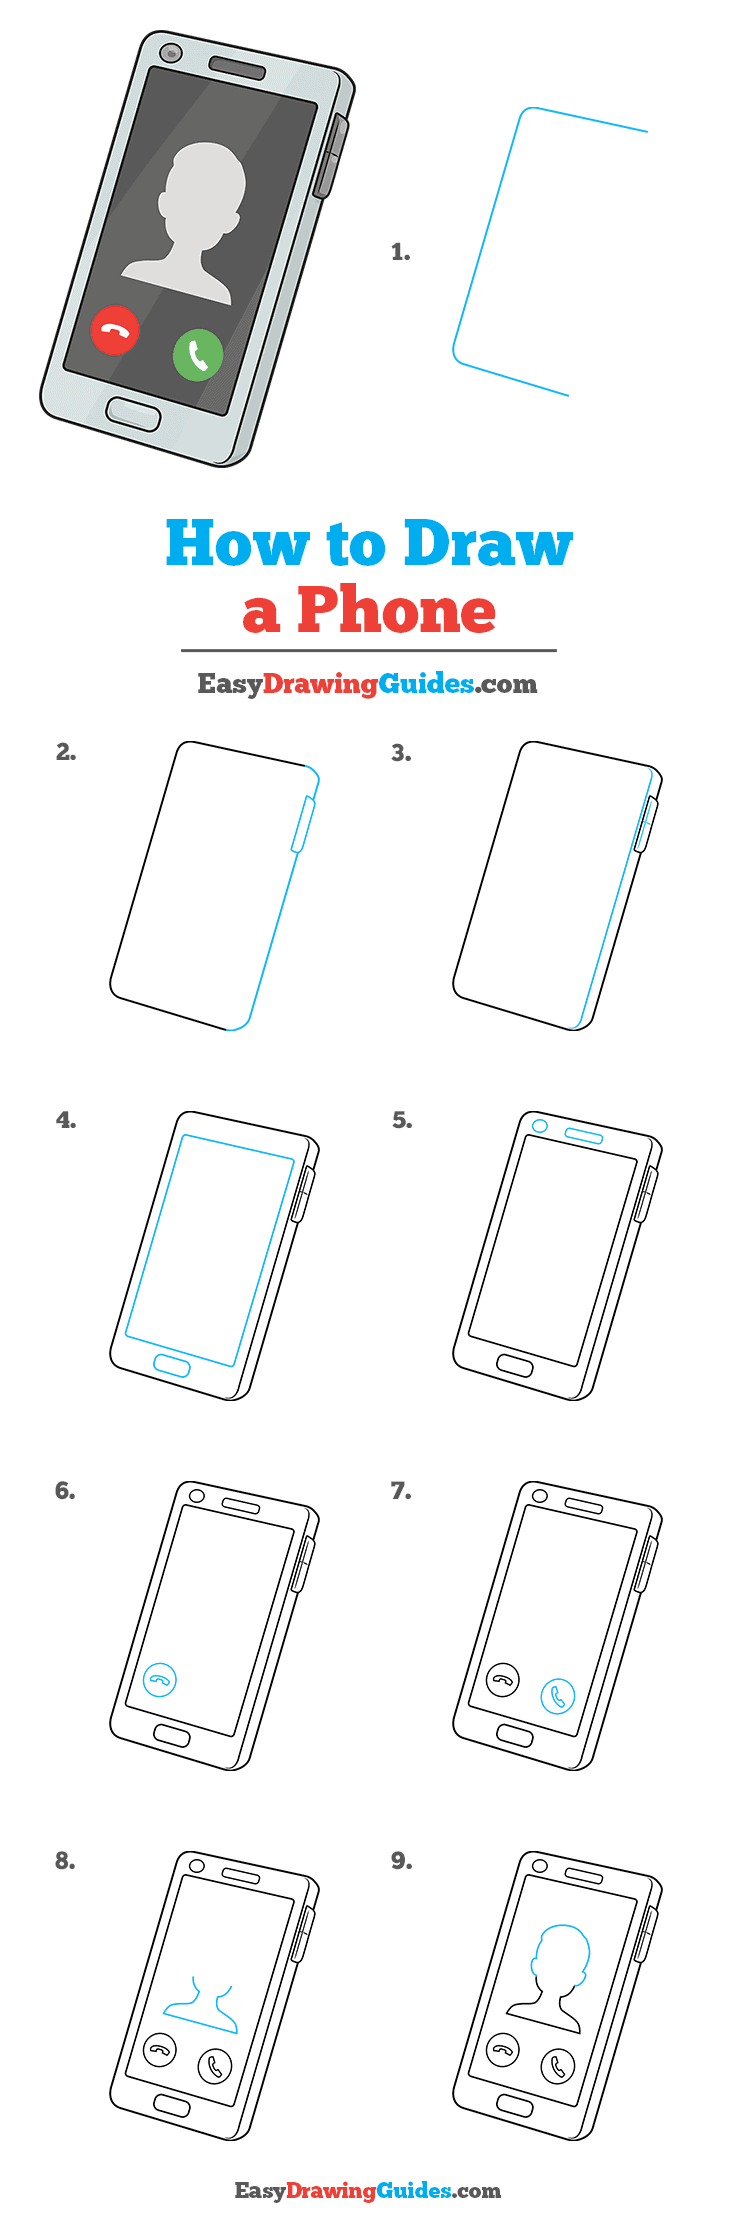 How to Draw Phone